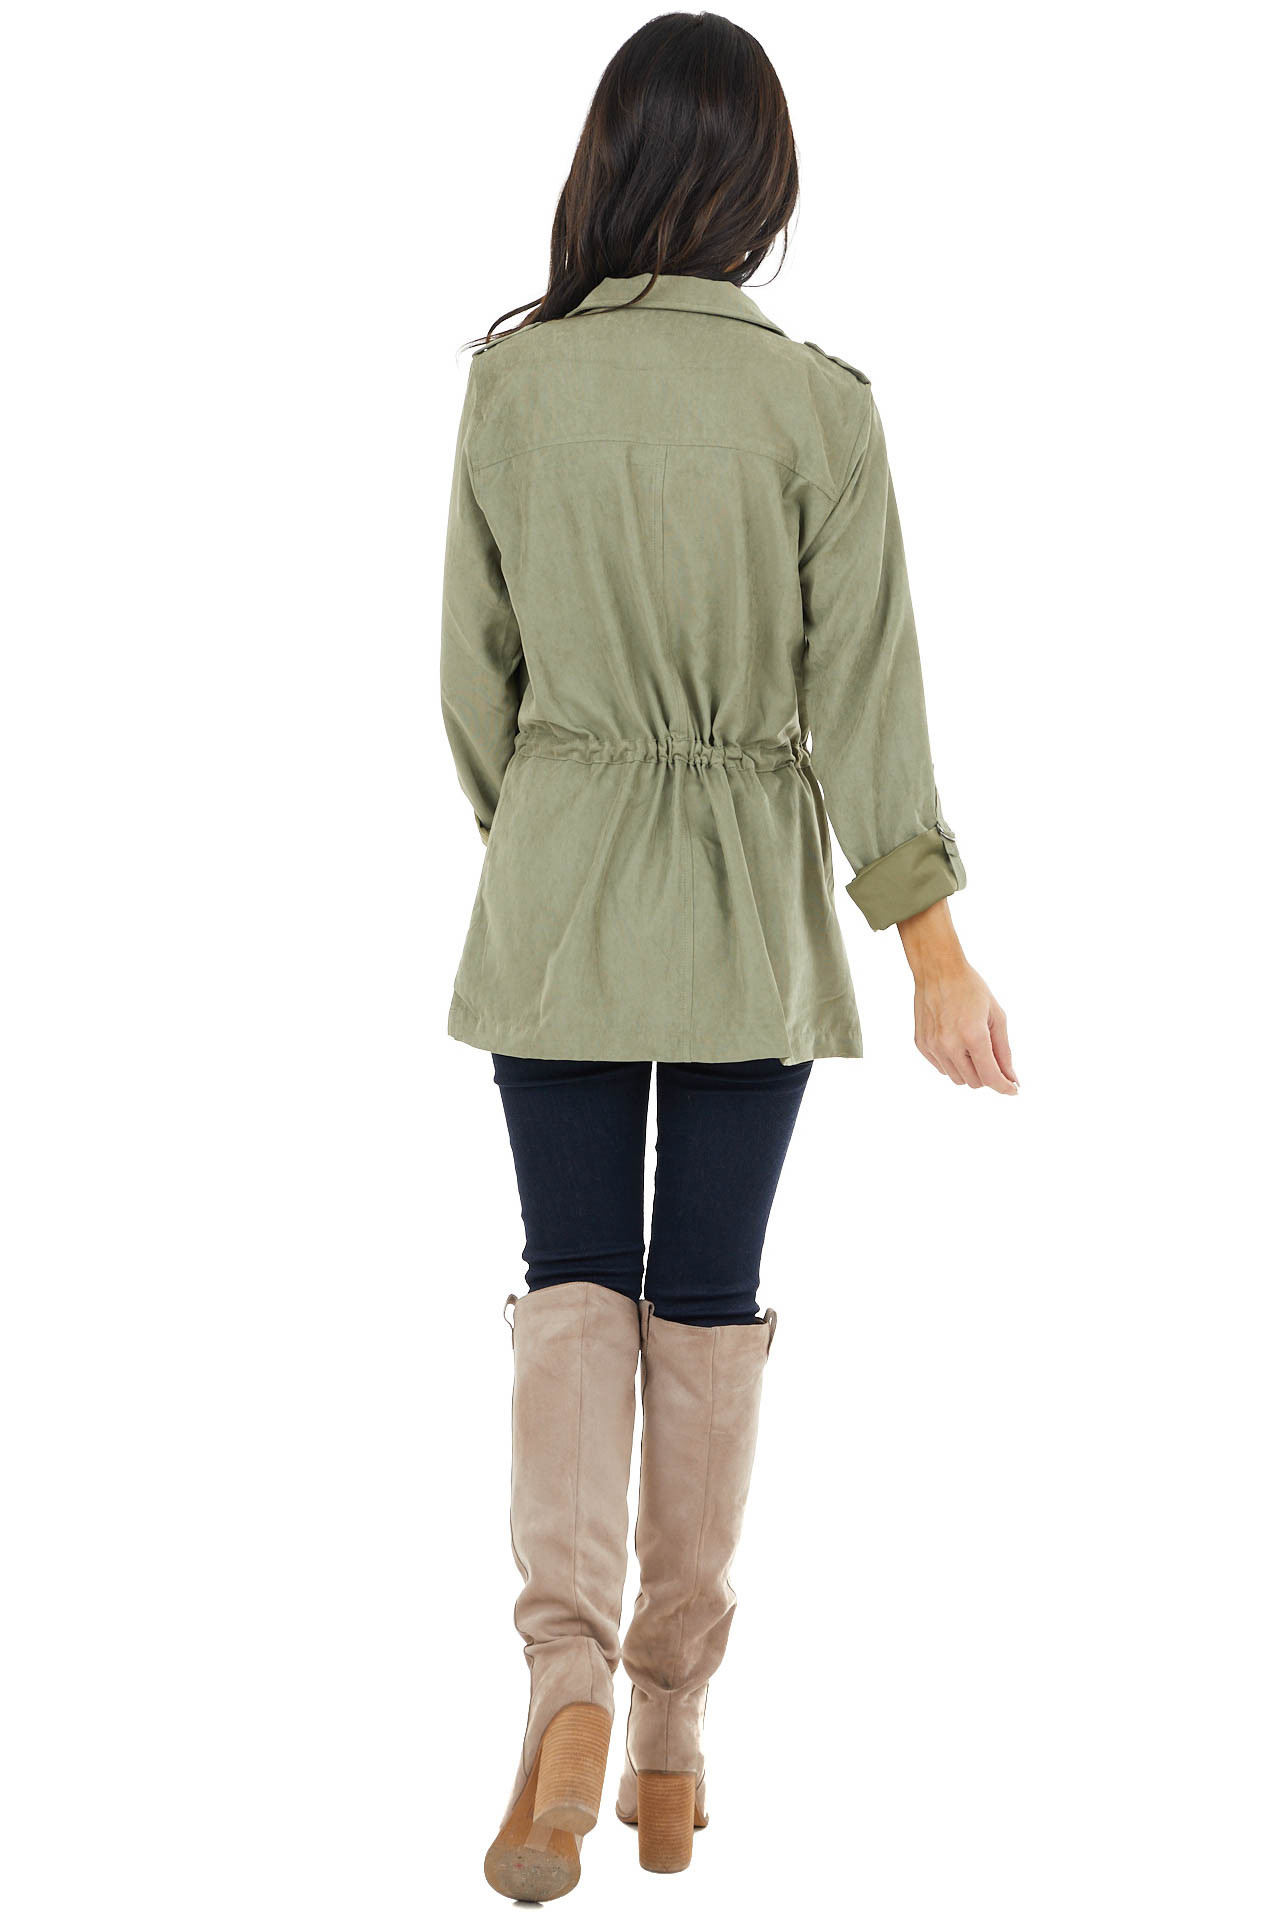 Sage Zip Up Jacket with Mock Neck and Drawstring Waist